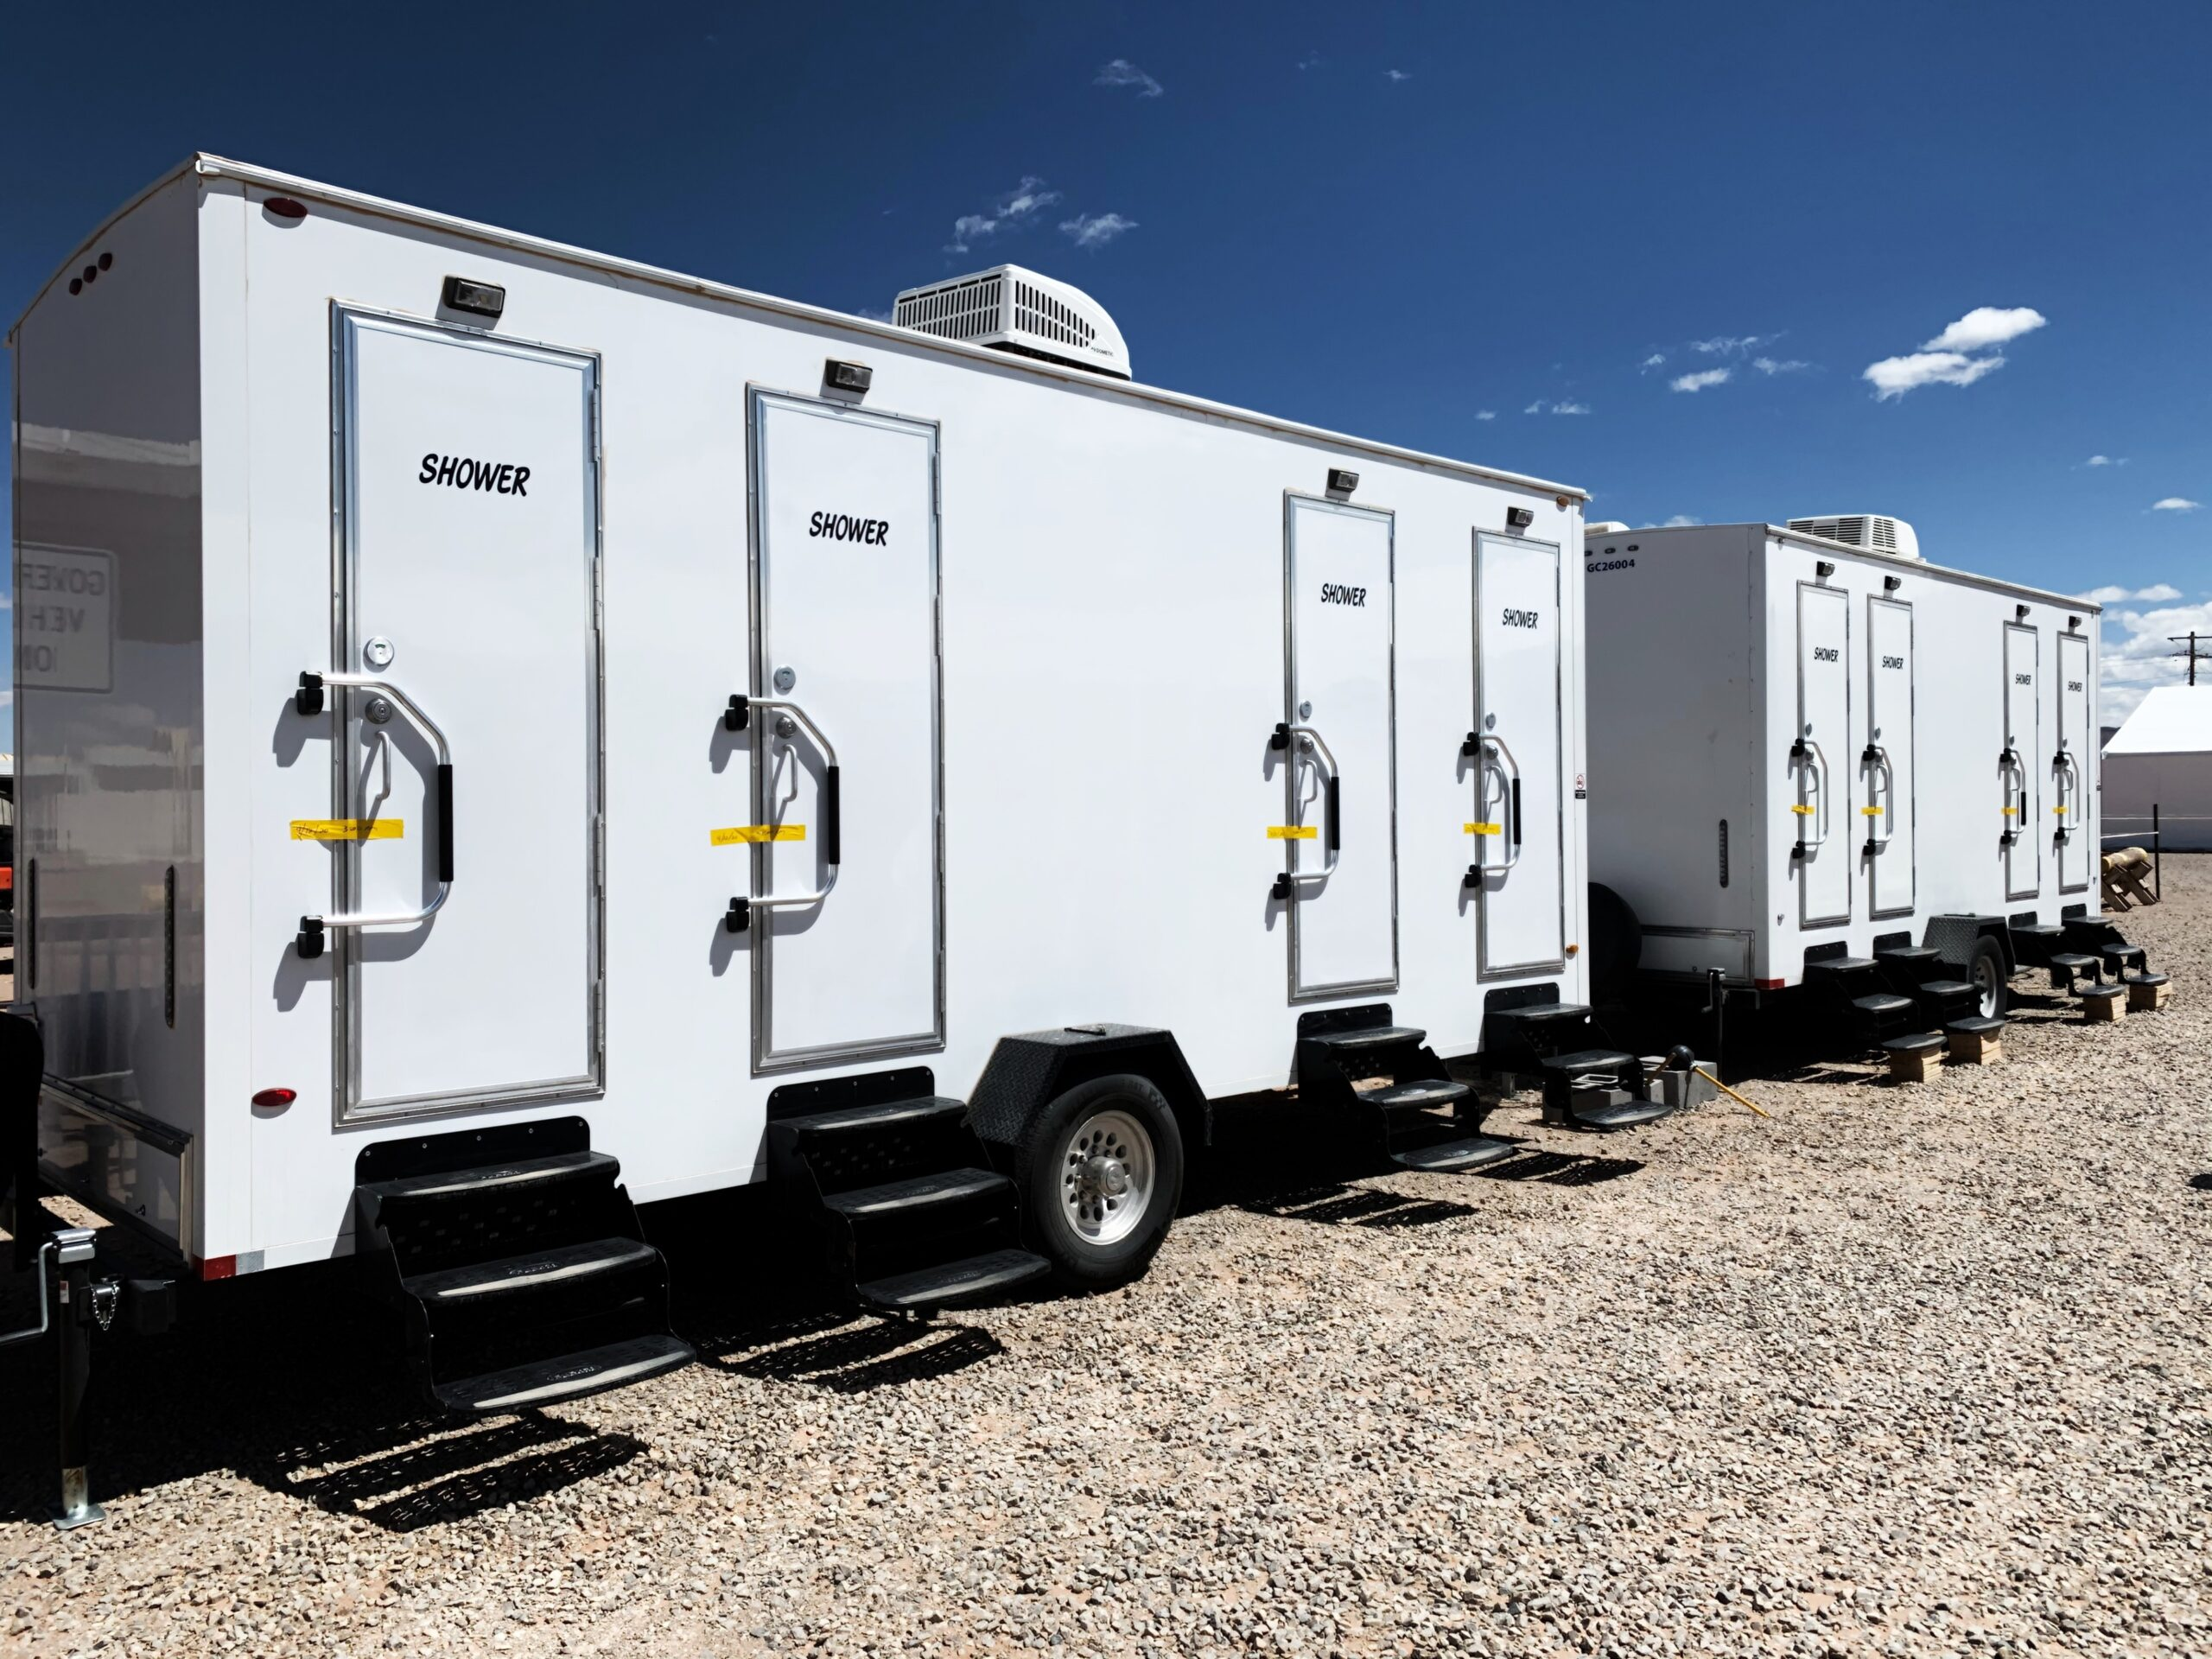 Lodging Solutions/Industrial Tent Systems Showers Trailer for Emergency Relief